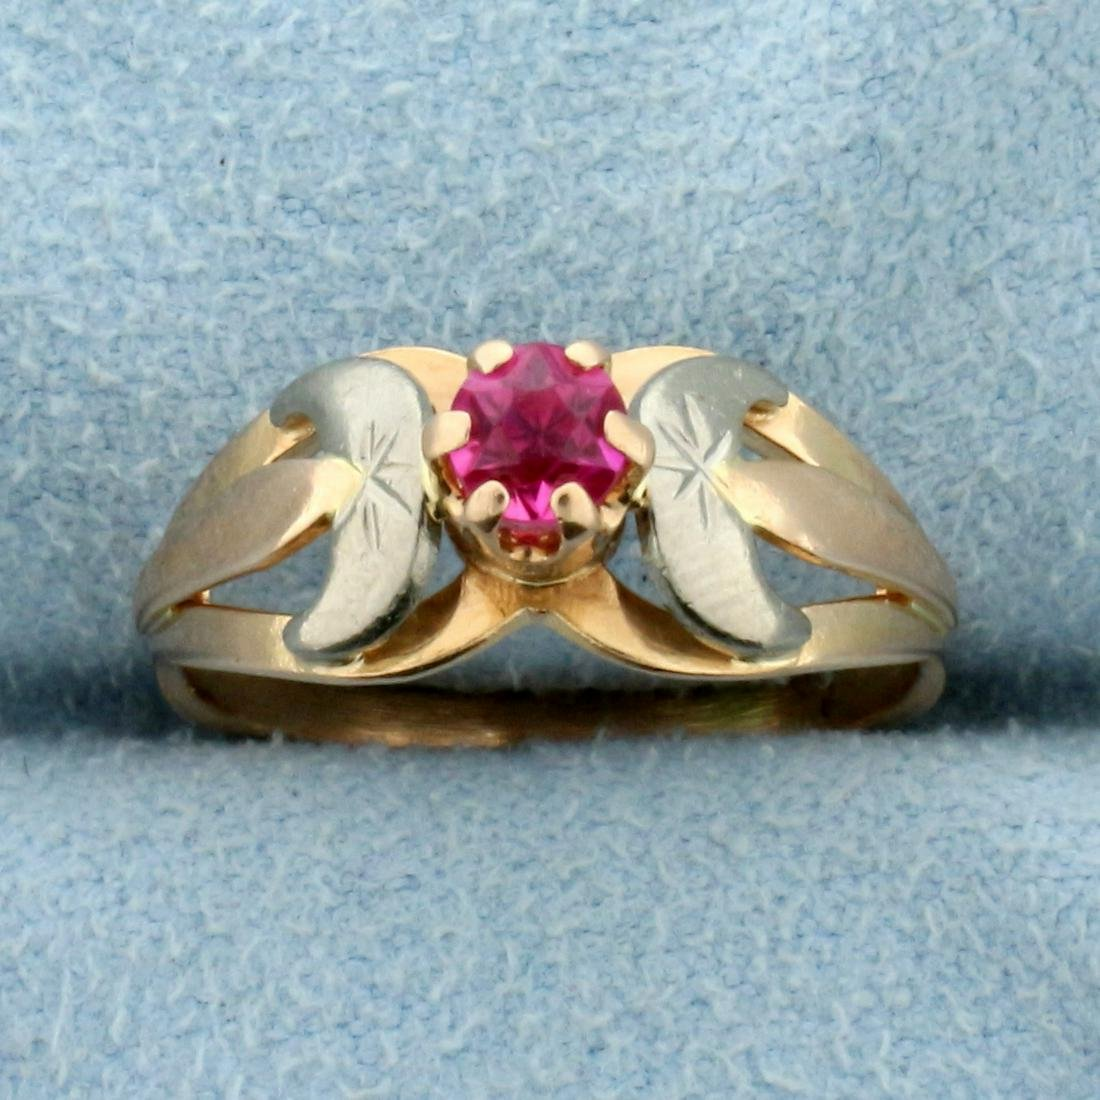 Antique 1/4ct Pink Sapphire Ring in 14K Rose and White